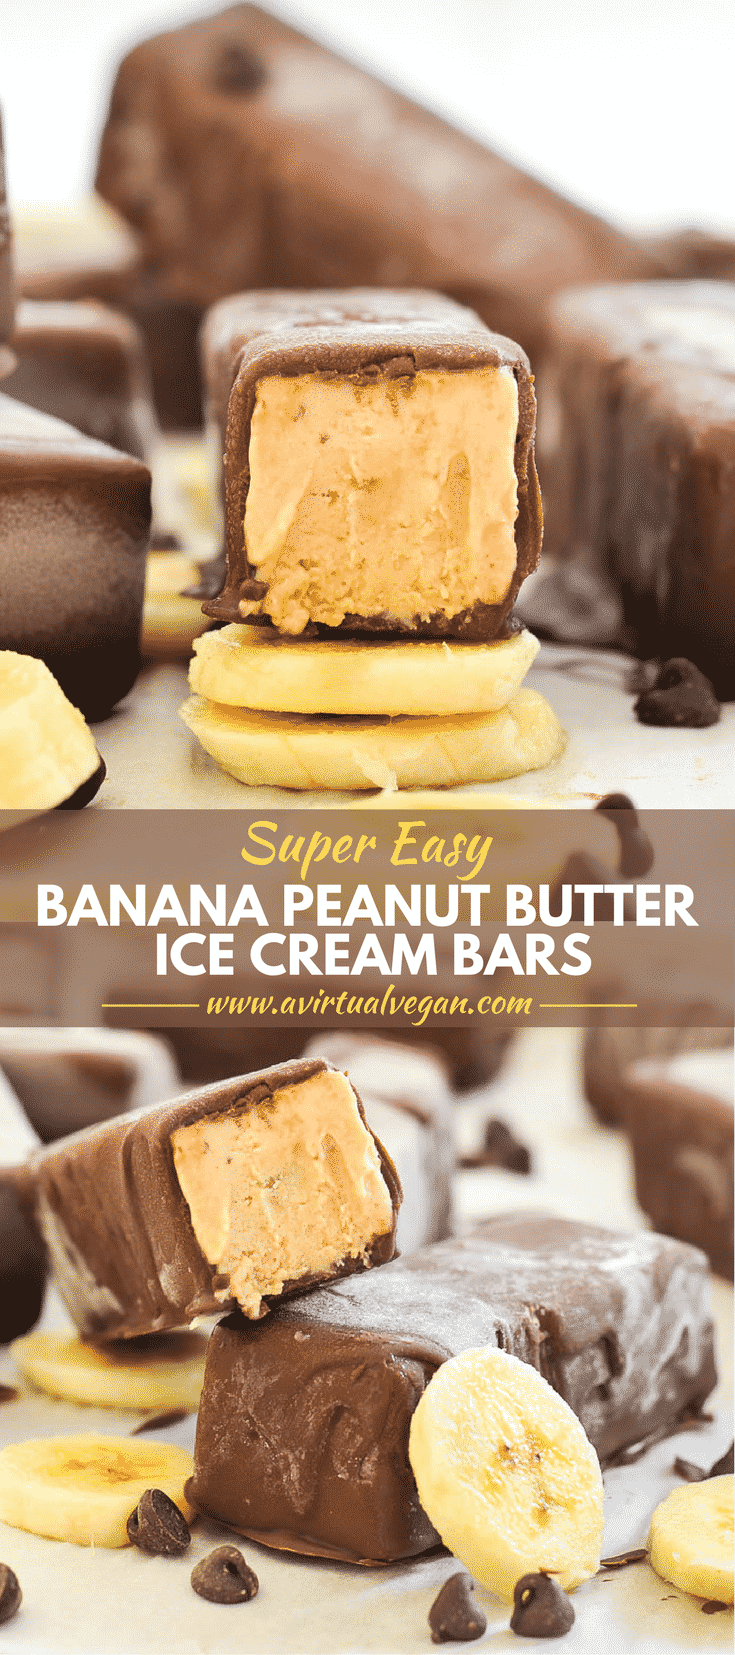 You are going to love these Super Easy Banana Peanut Butter Ice Cream Bars! They are ridiculously easy to make & only have 5 ingredients (plus salt)!